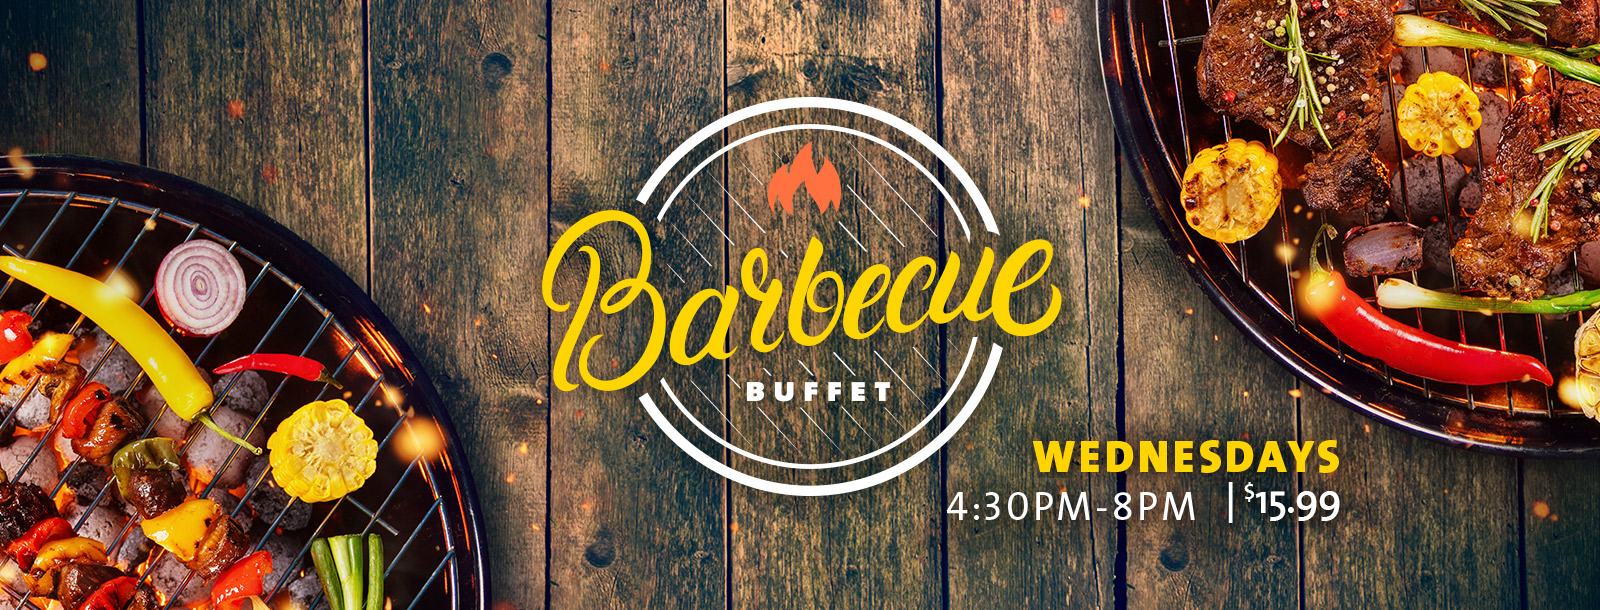 sioux-city-barbecue-buffet